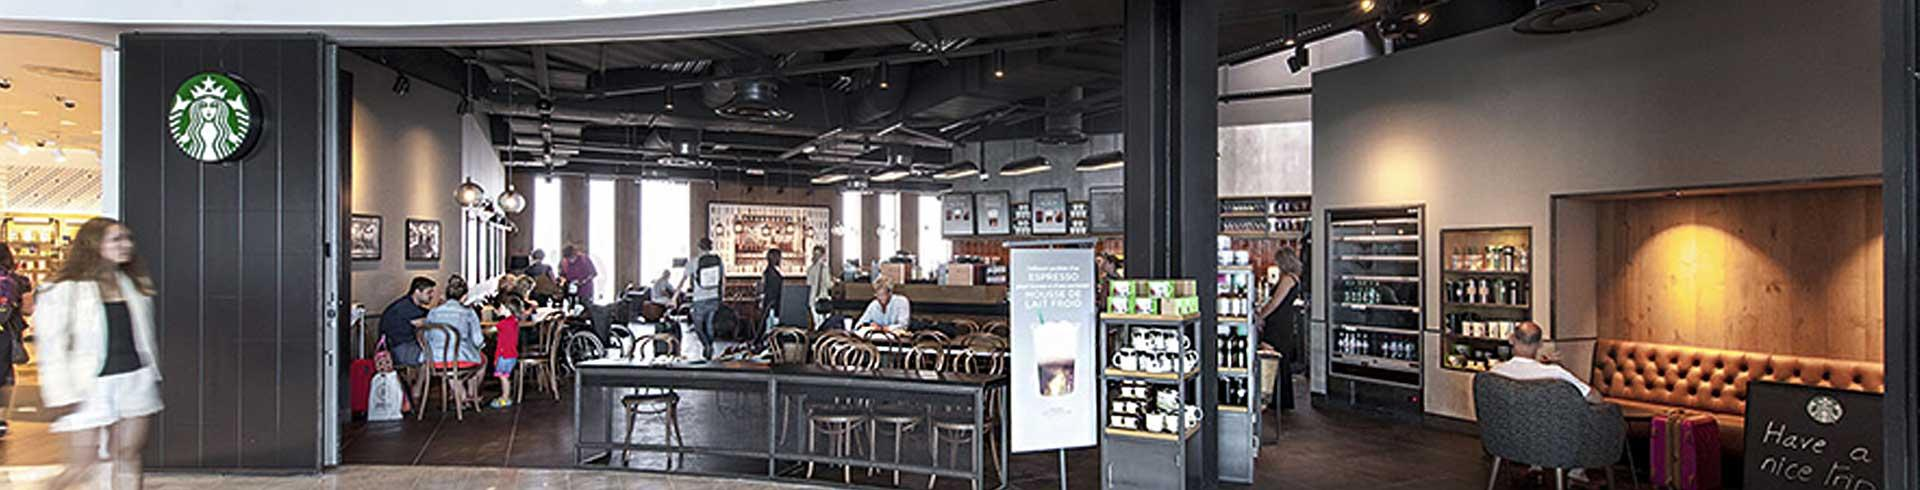 starbucks restaurants bars terminal 2 shops services la promenade nice airport. Black Bedroom Furniture Sets. Home Design Ideas